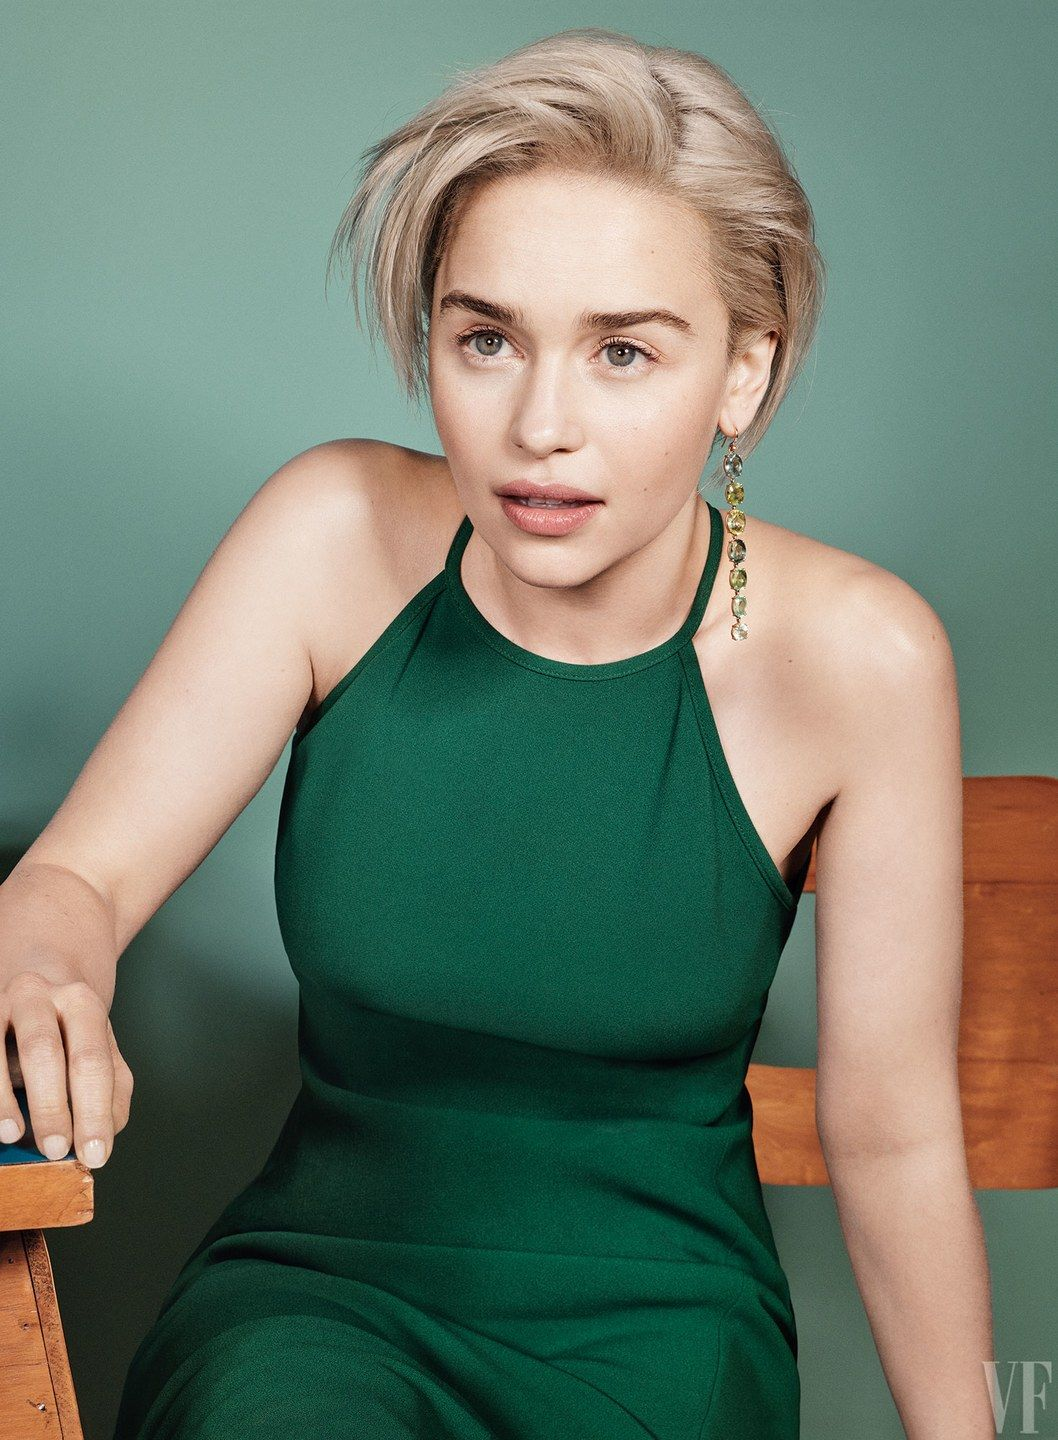 Exclusive: Emilia Clarke on finding self-confidence (and the perfect red lipstick) recommend